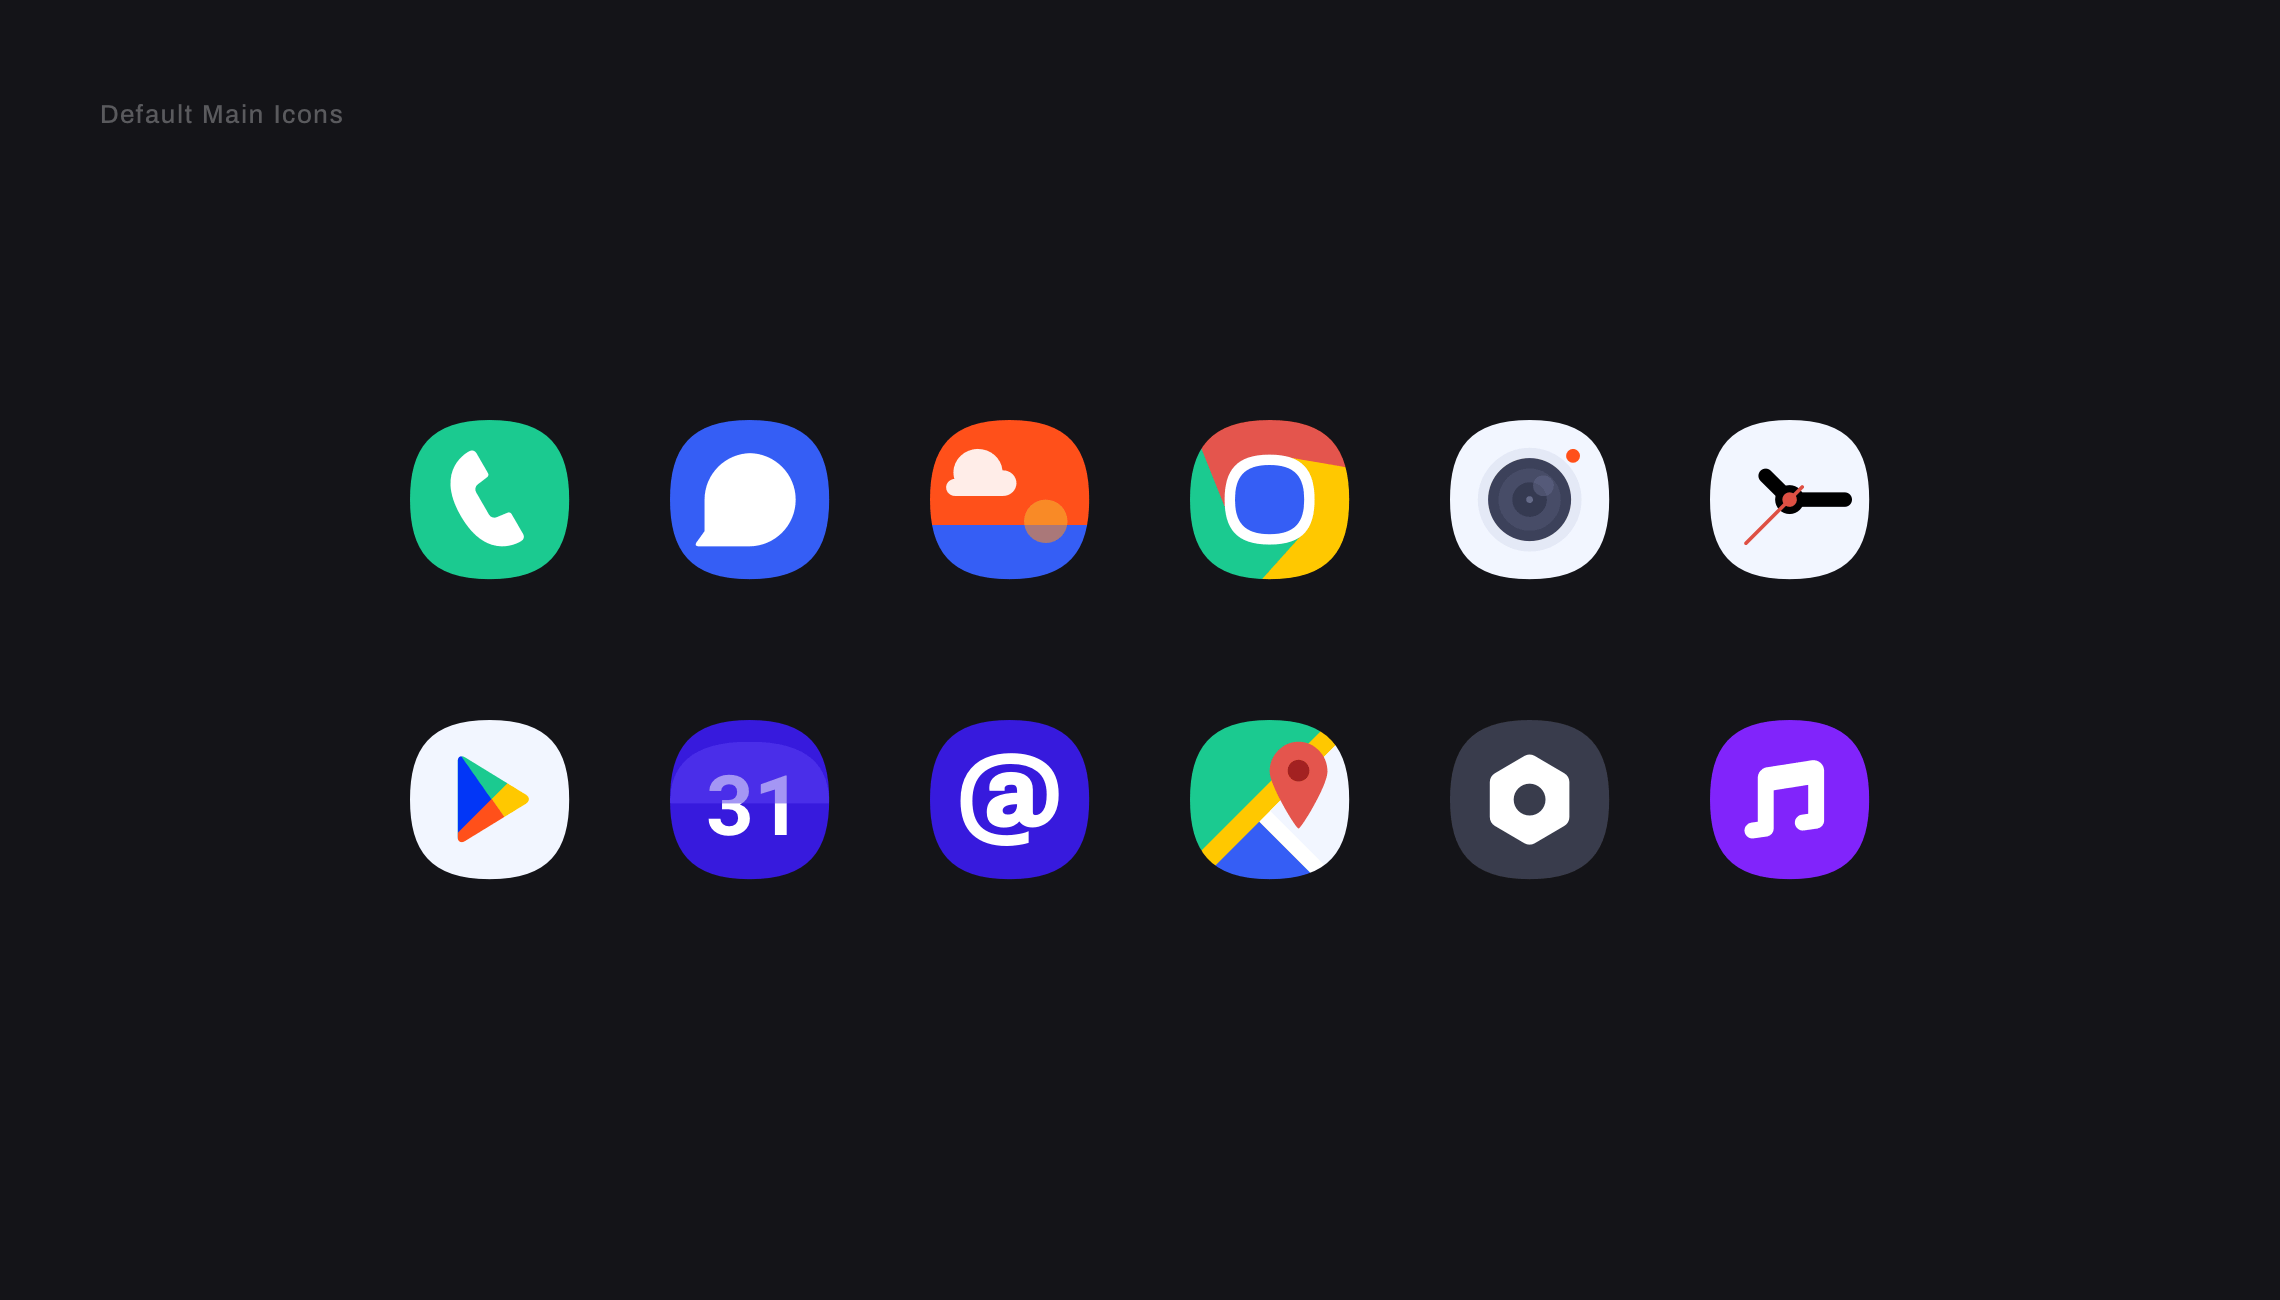 Default_Icons